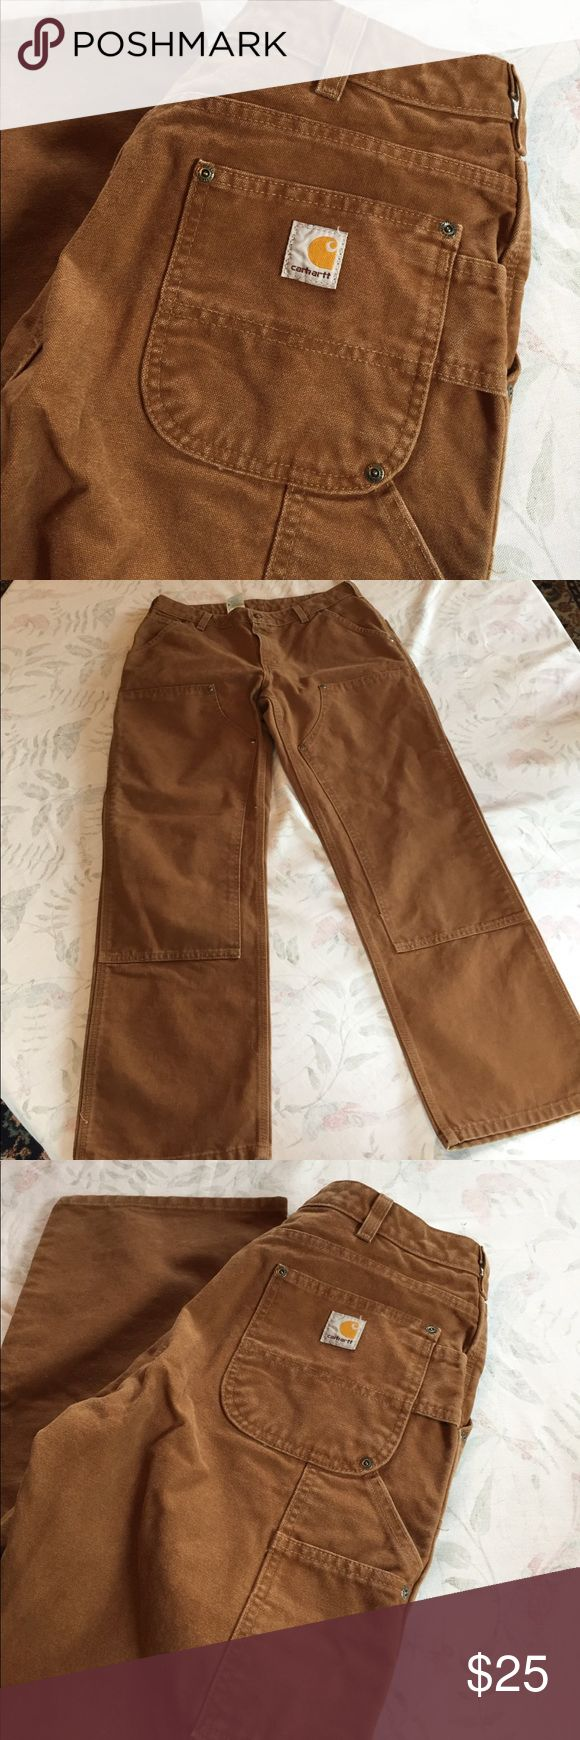 Carhartt dungaree fit pants Carhartt dungaree fit pants great preloved condition perfect for camping or work! Carhartt Pants